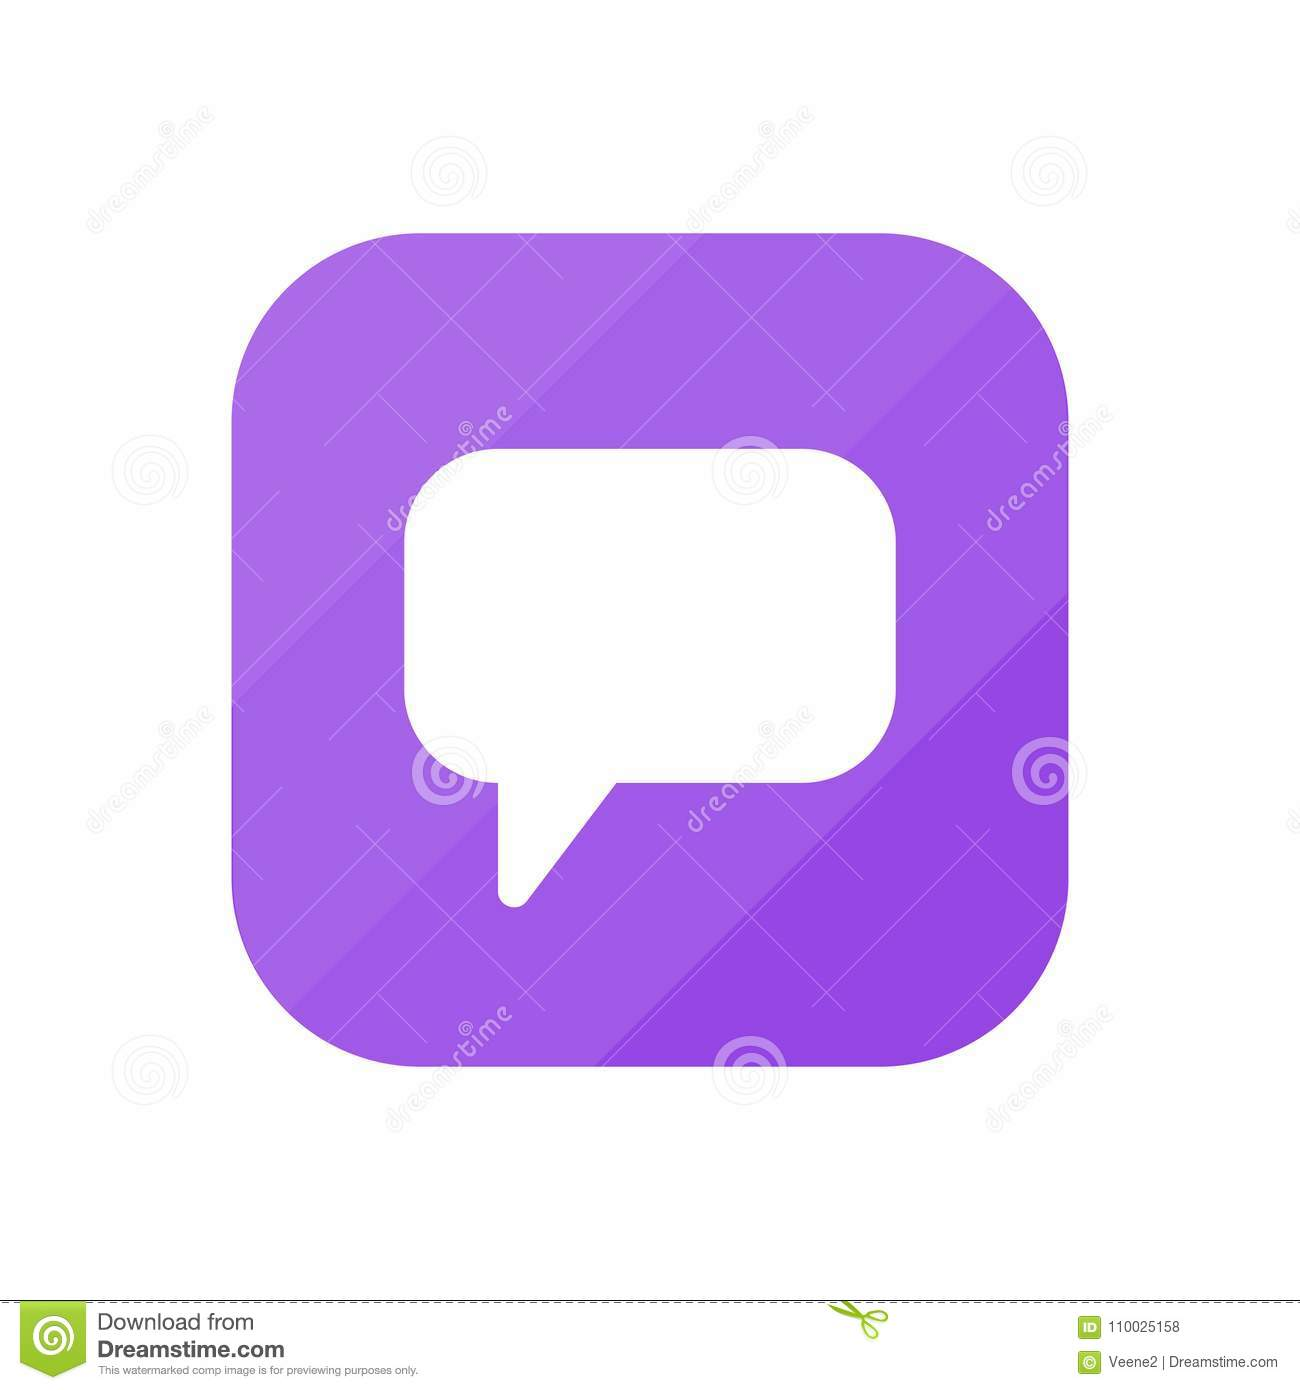 Commentaar - App Pictogram